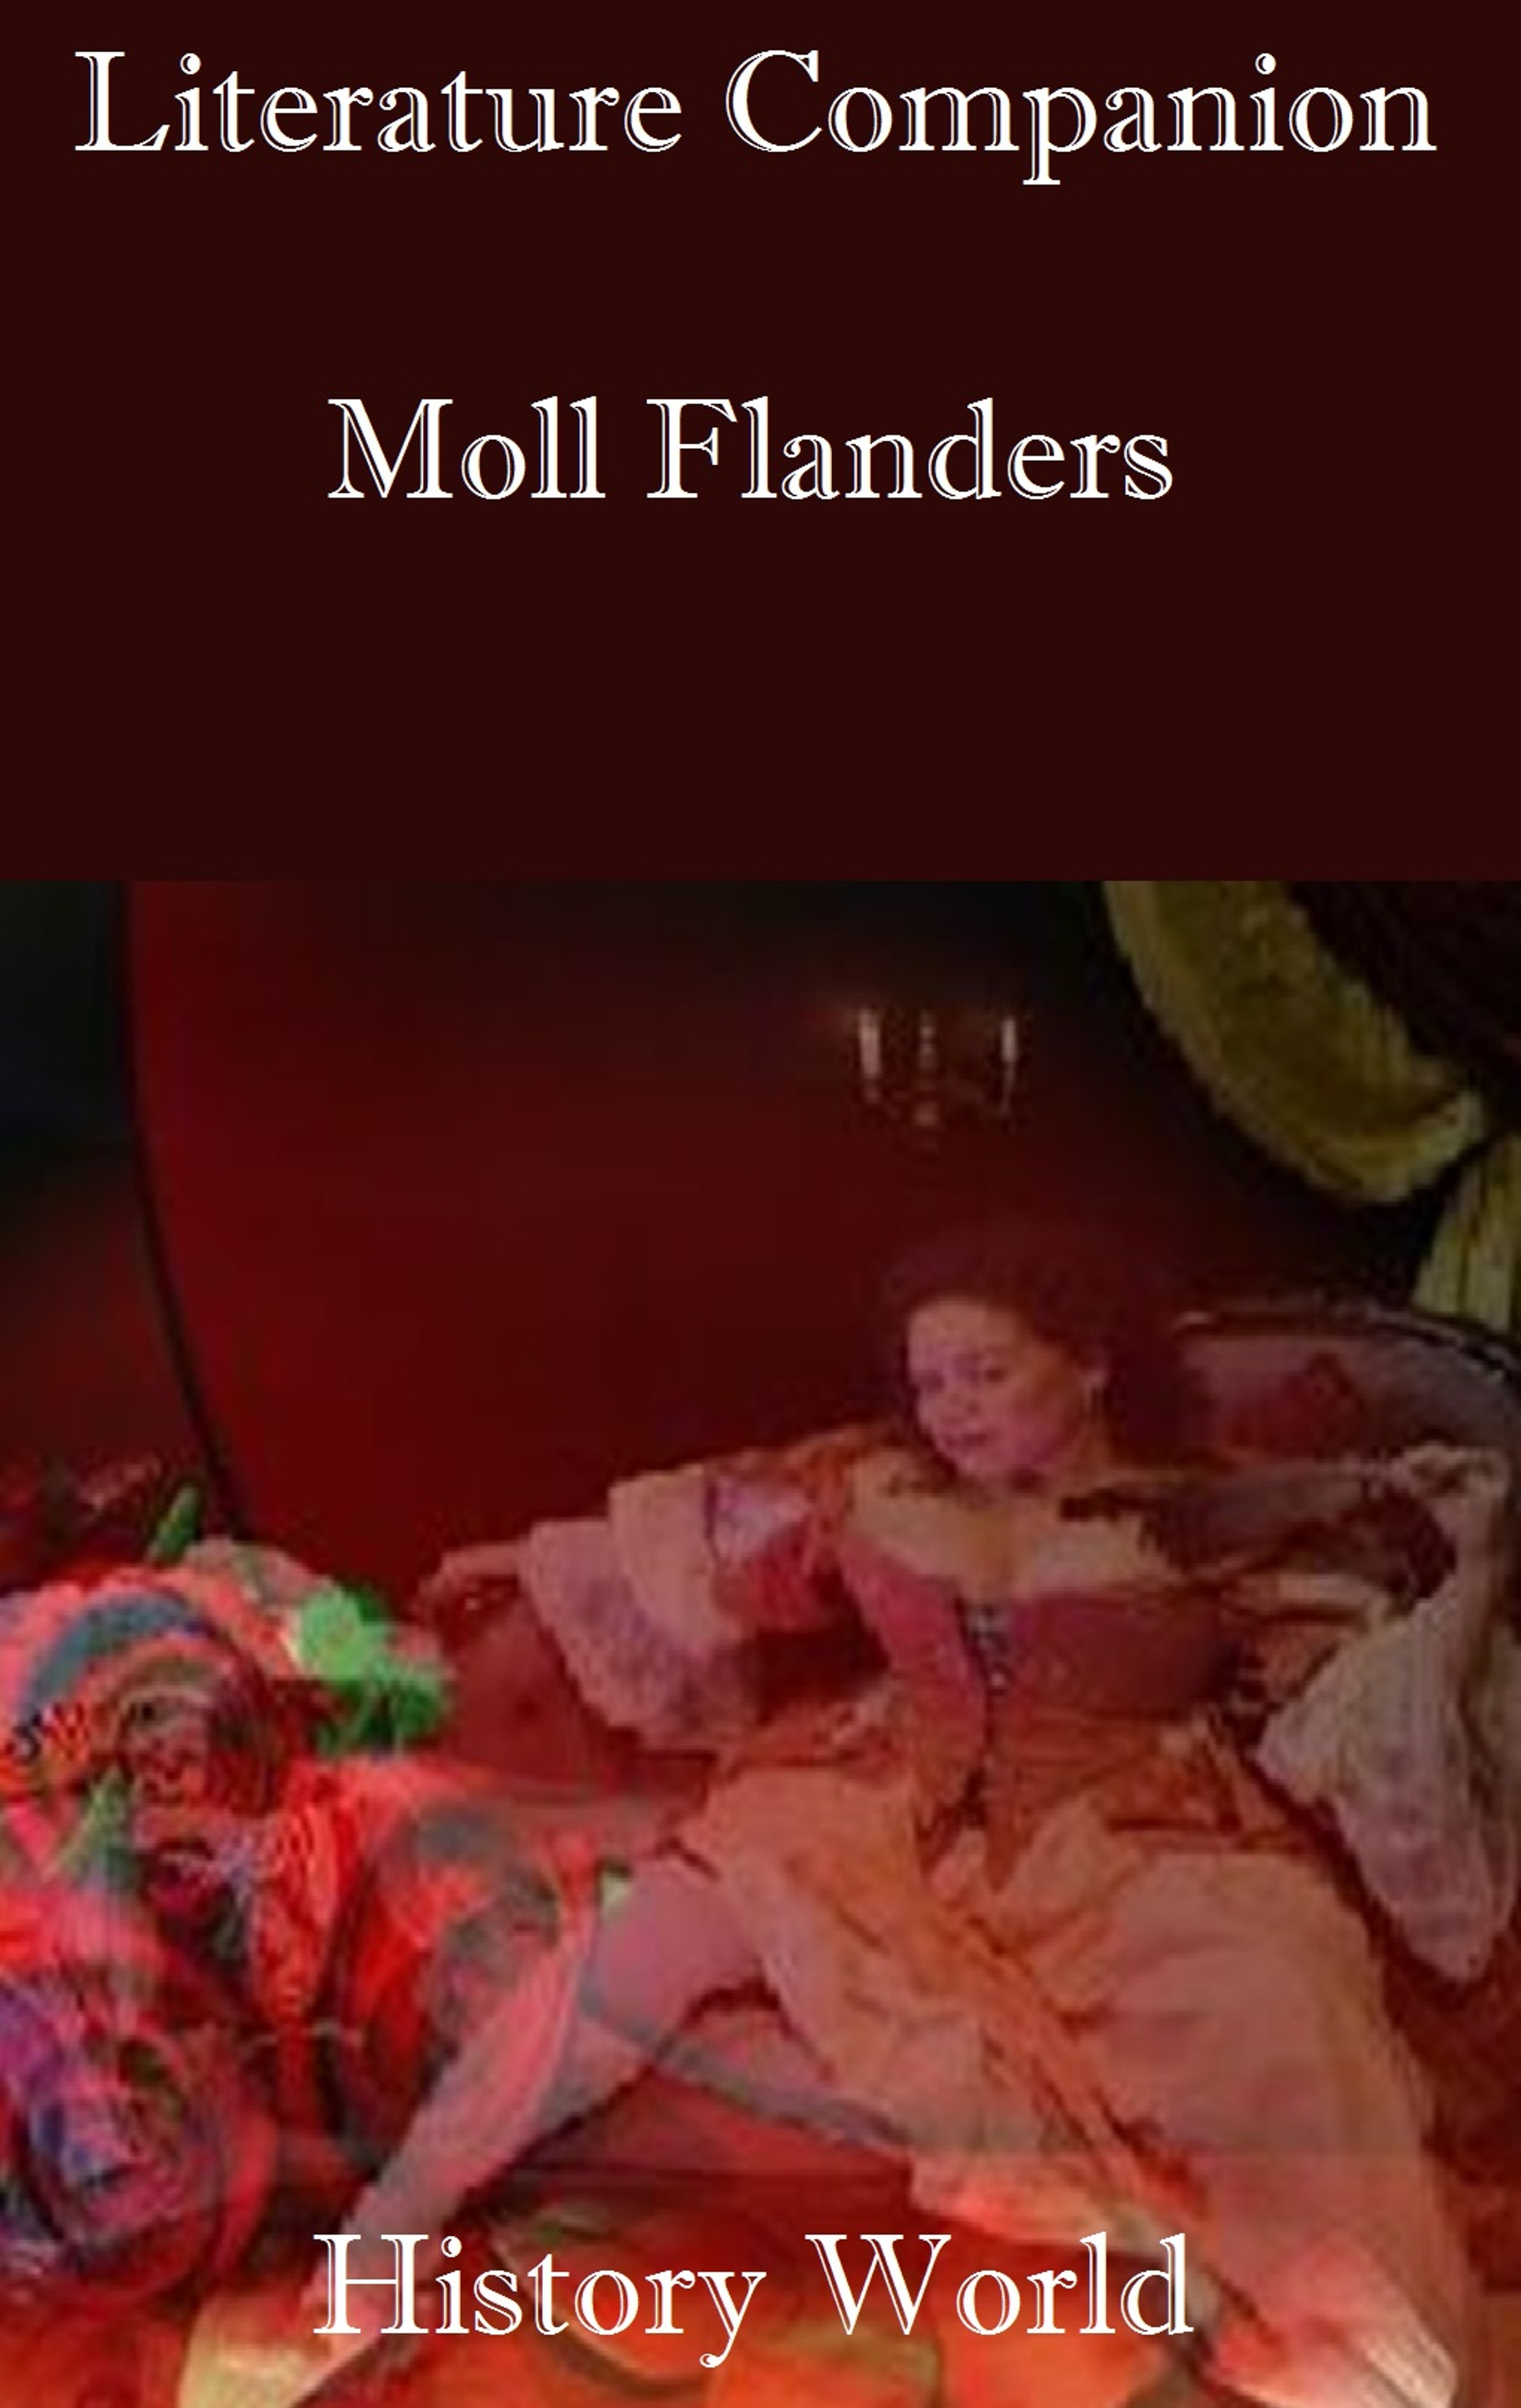 an introduction to the life of moll flanders Moll: the life and times of moll flanders kindle edition by siân rees (author) 40 out of 5 stars 2 customer reviews.